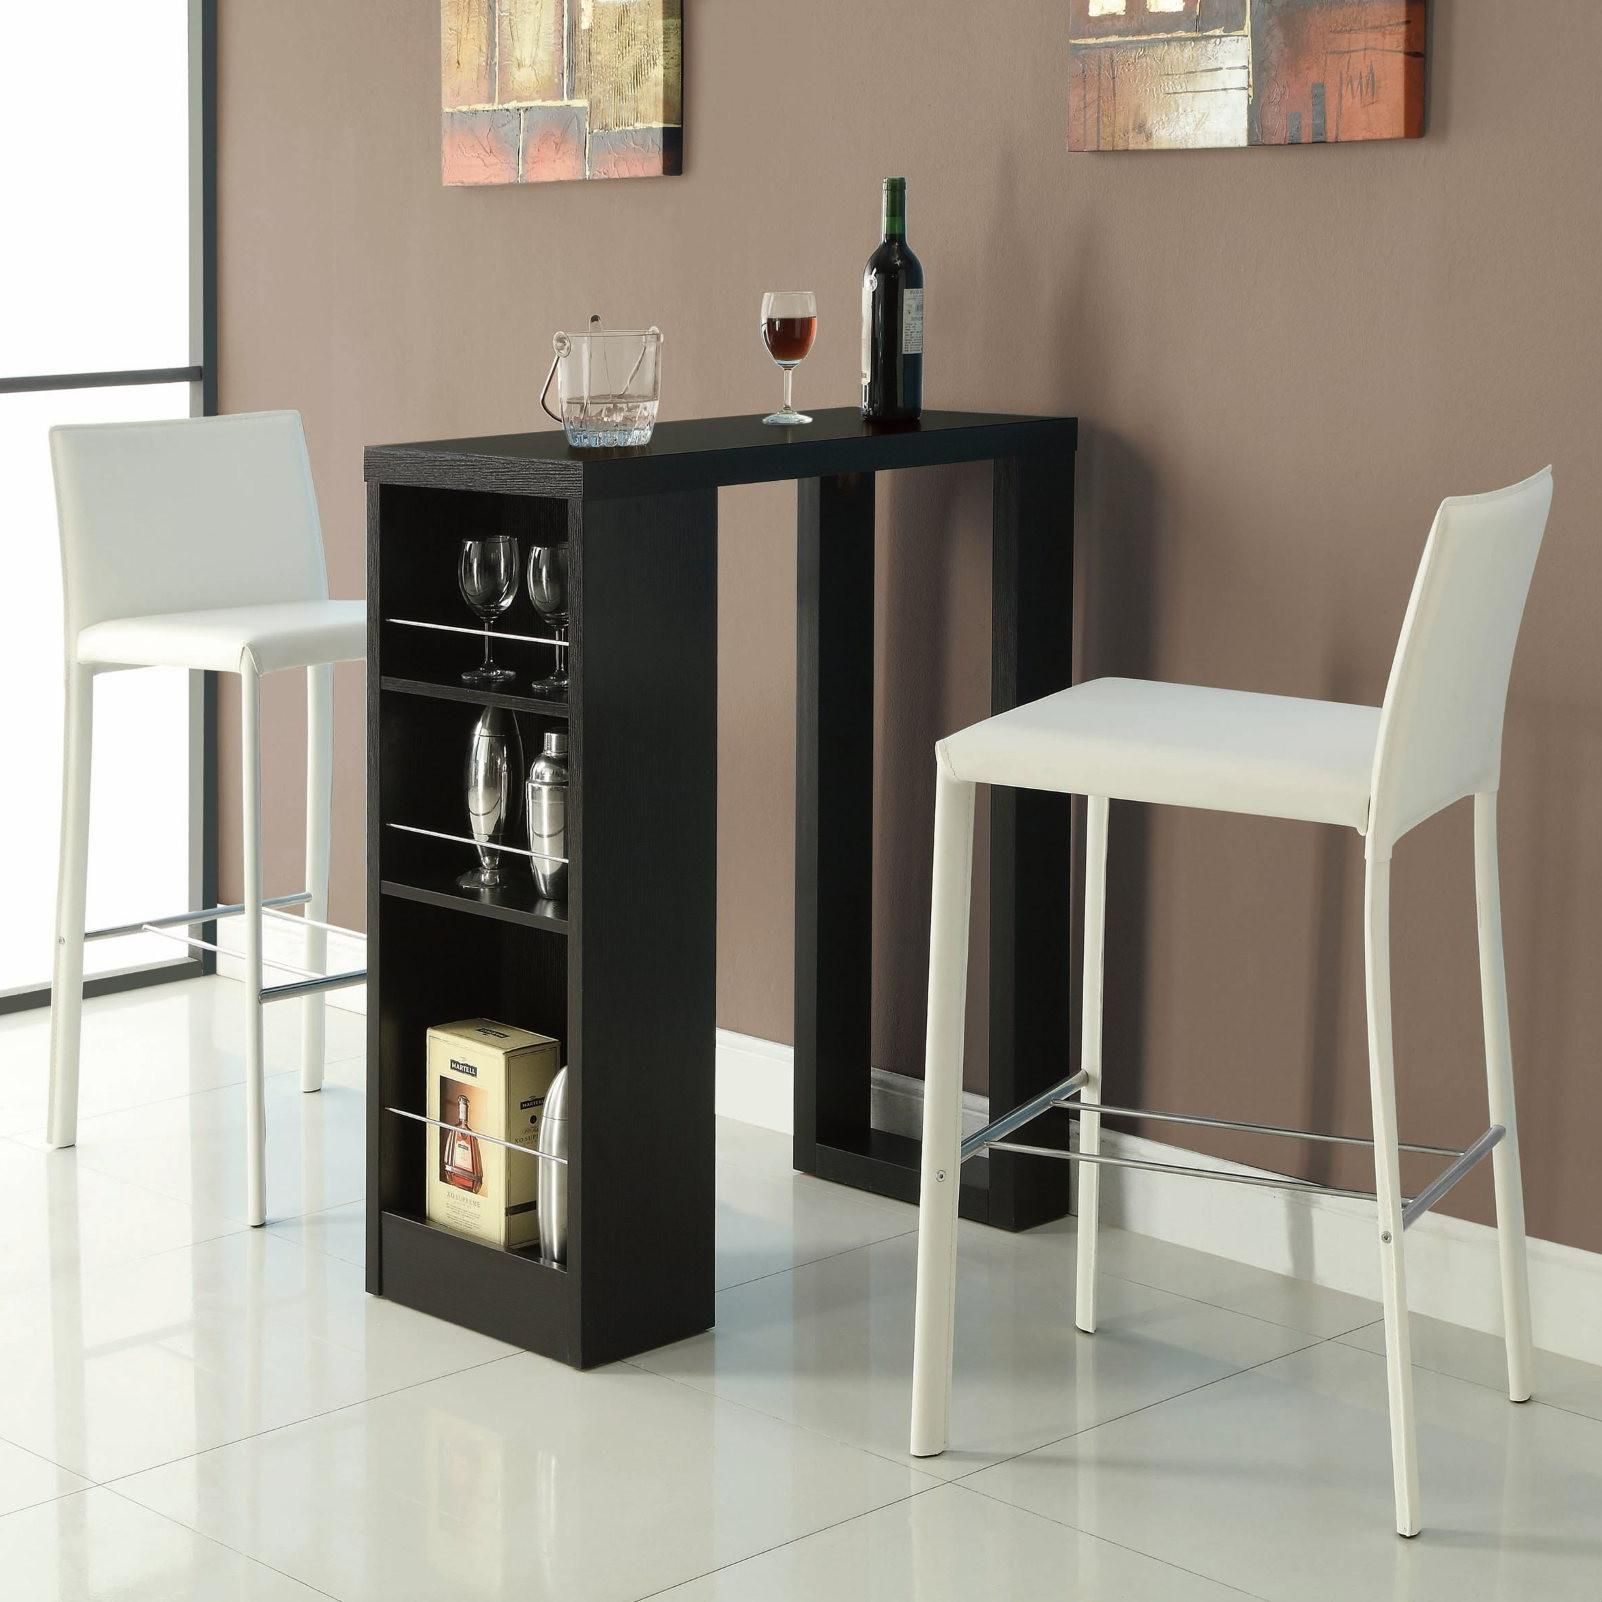 bar table for kitchen design tools units and tables small with storage